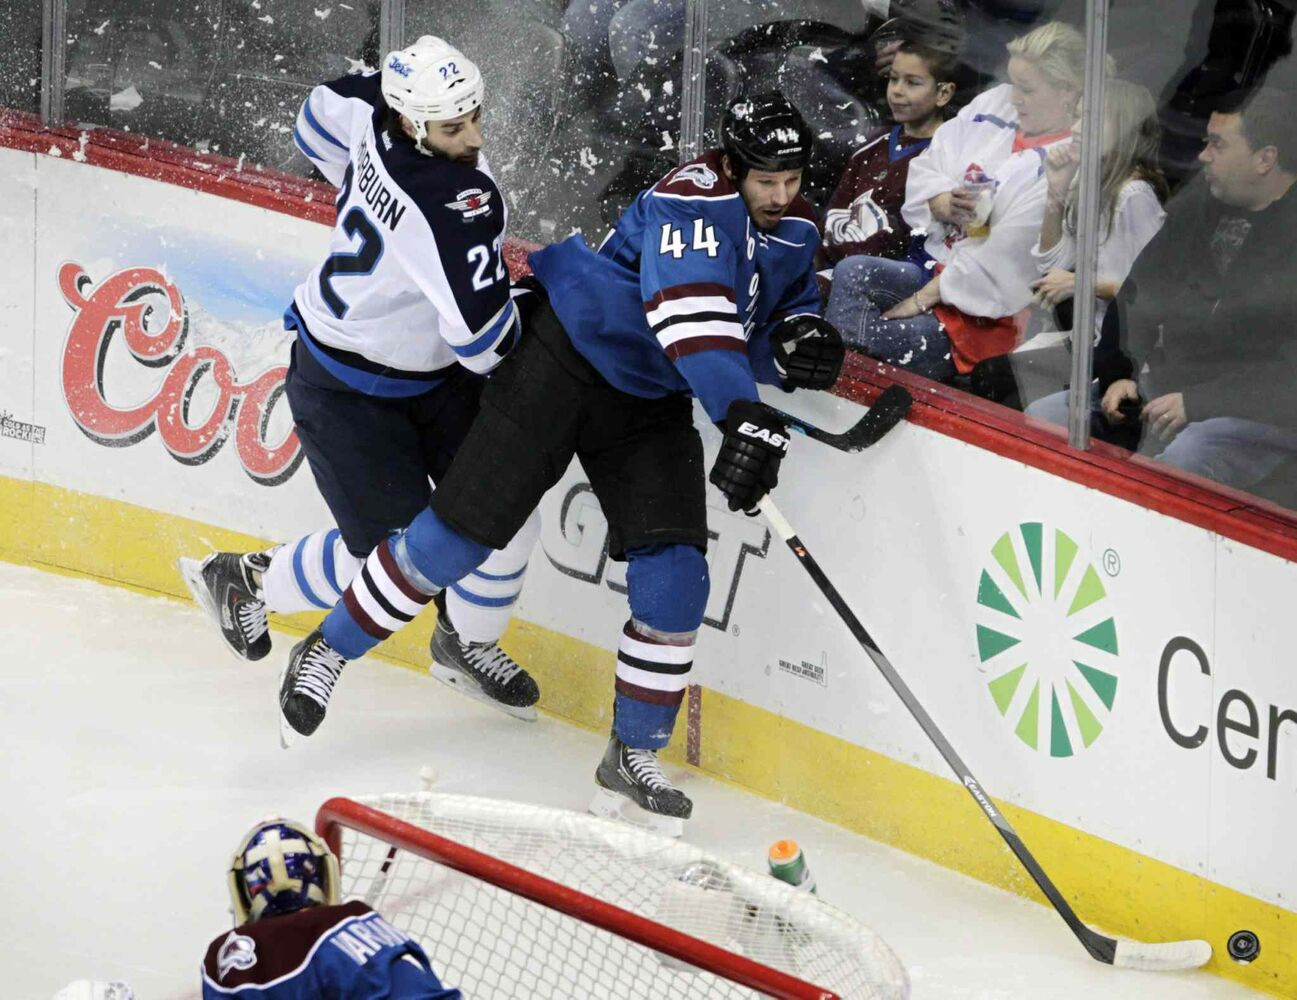 Winnipeg Jets winger Chris Thorburn (left) checks Colorado Avalanche defenceman Ryan Wilson during the first period. (Joe Mahoney / The Associated Press)